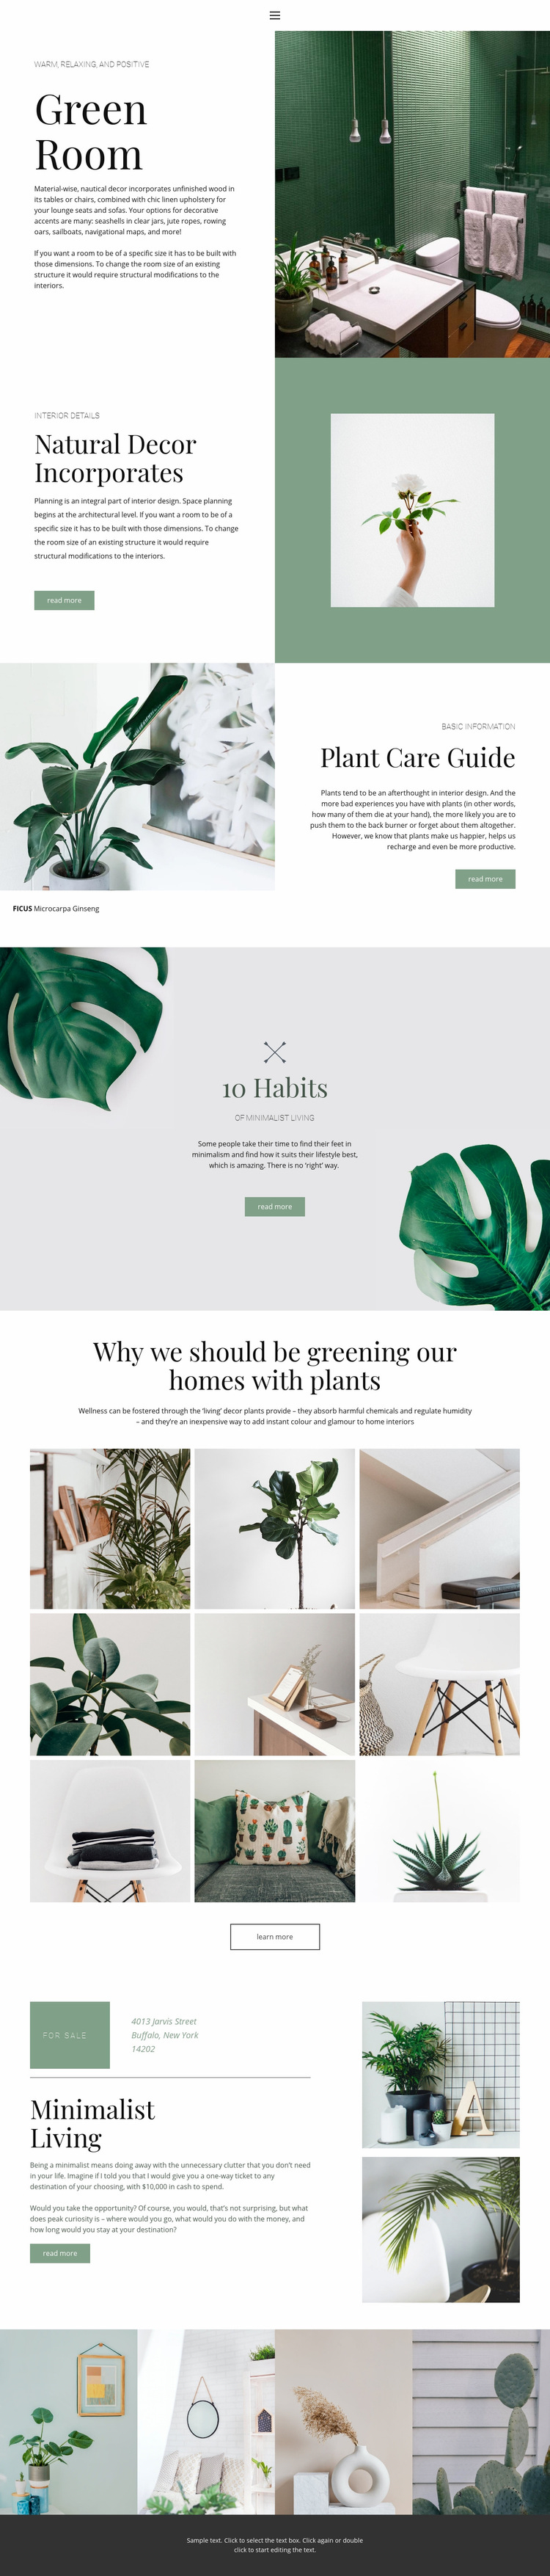 Green details in home Web Page Design